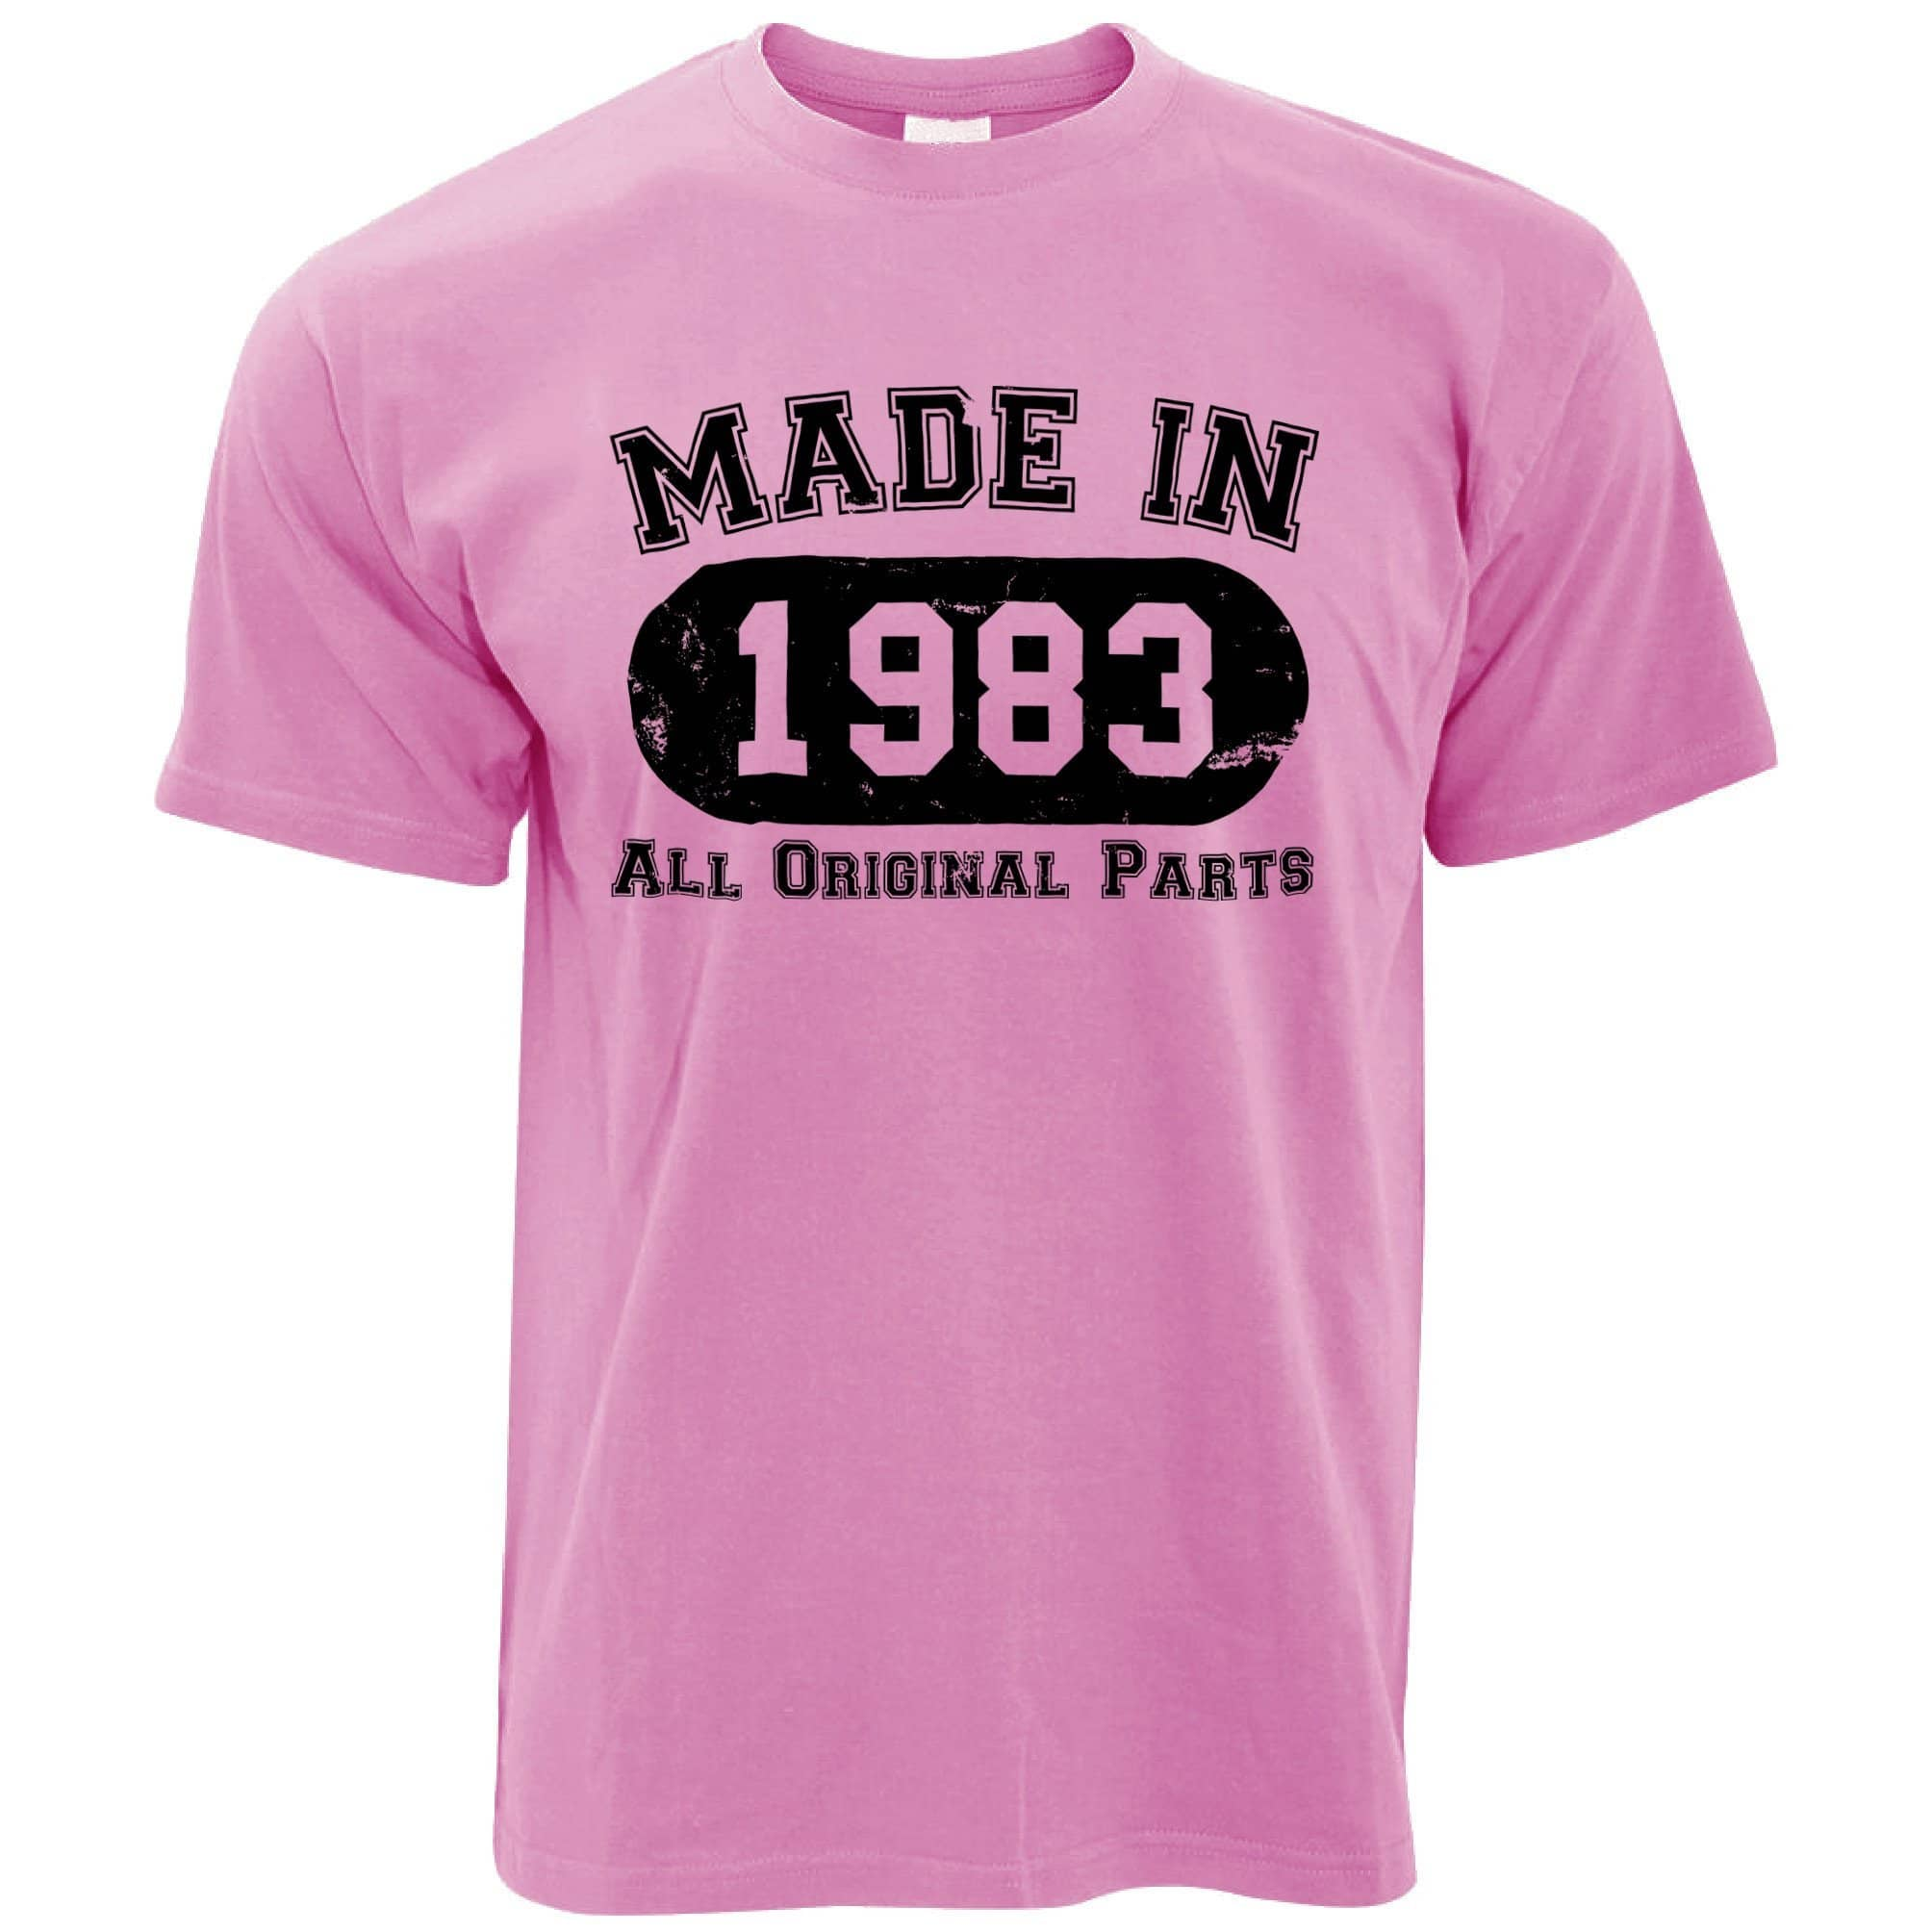 Made in 1983 All Original Parts Mens T-Shirt [Distressed]